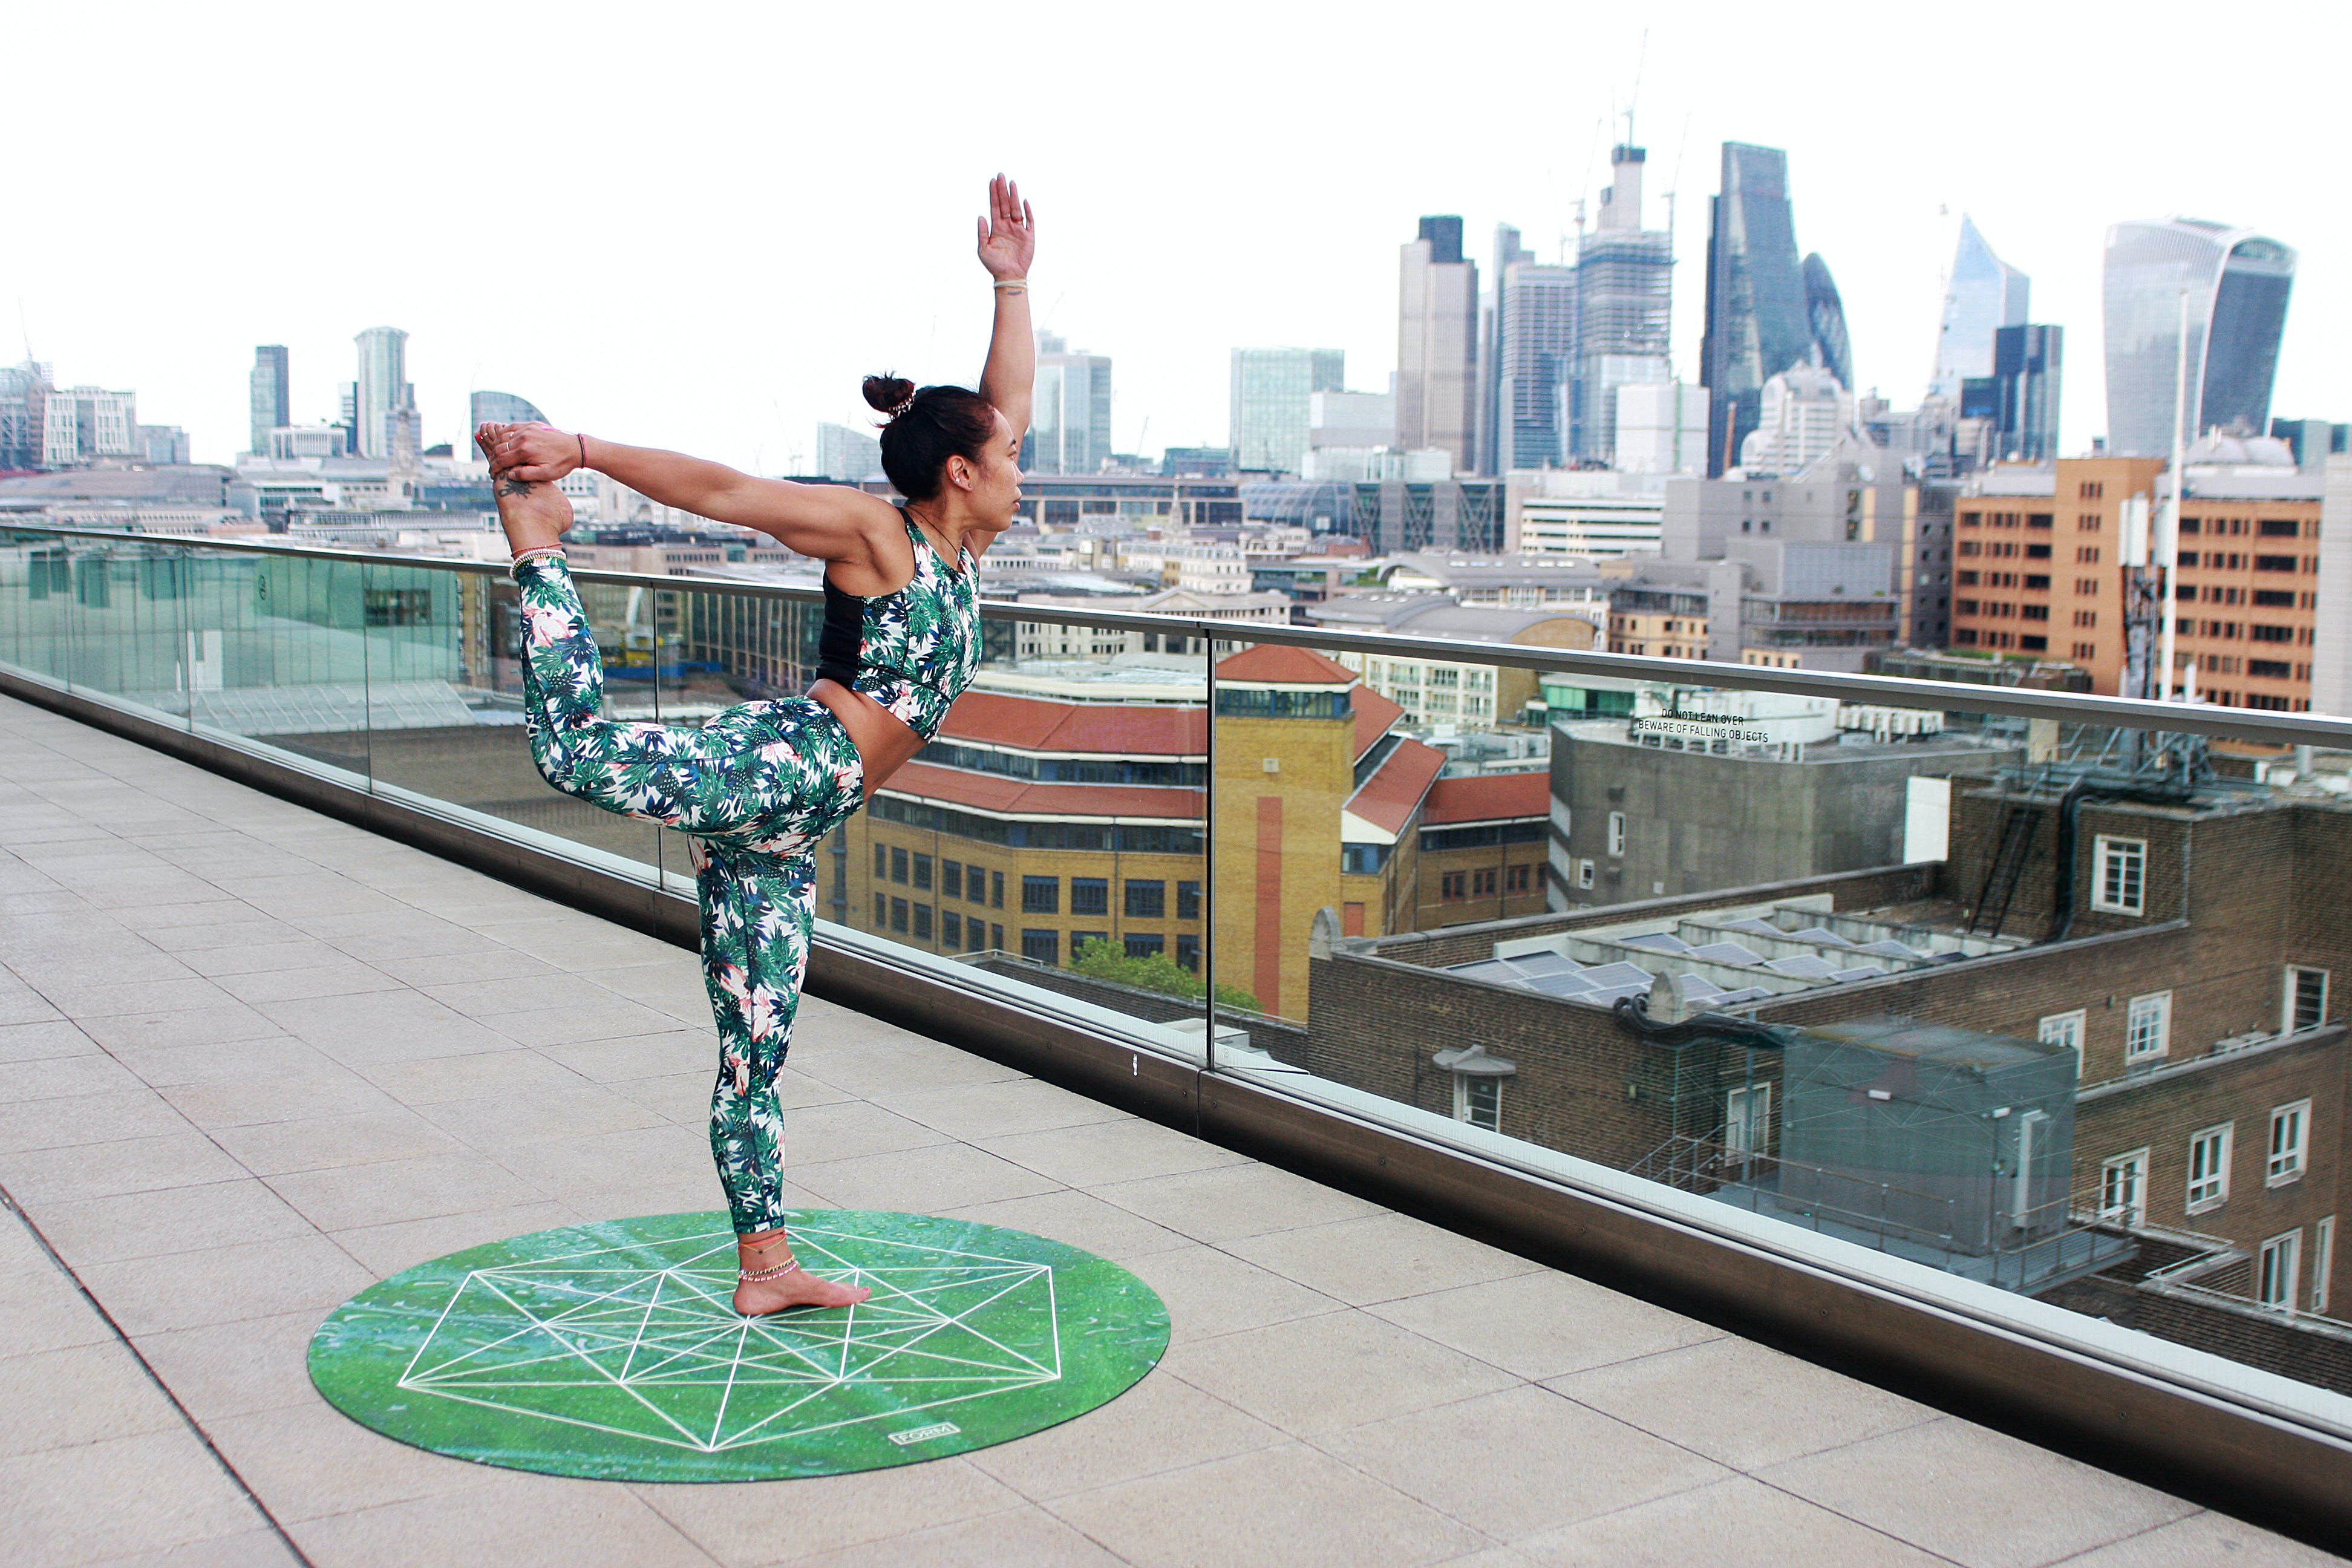 Woman on Round Green Yoga Mat Position in Right Leg High and Left Hand Upright Posiiton